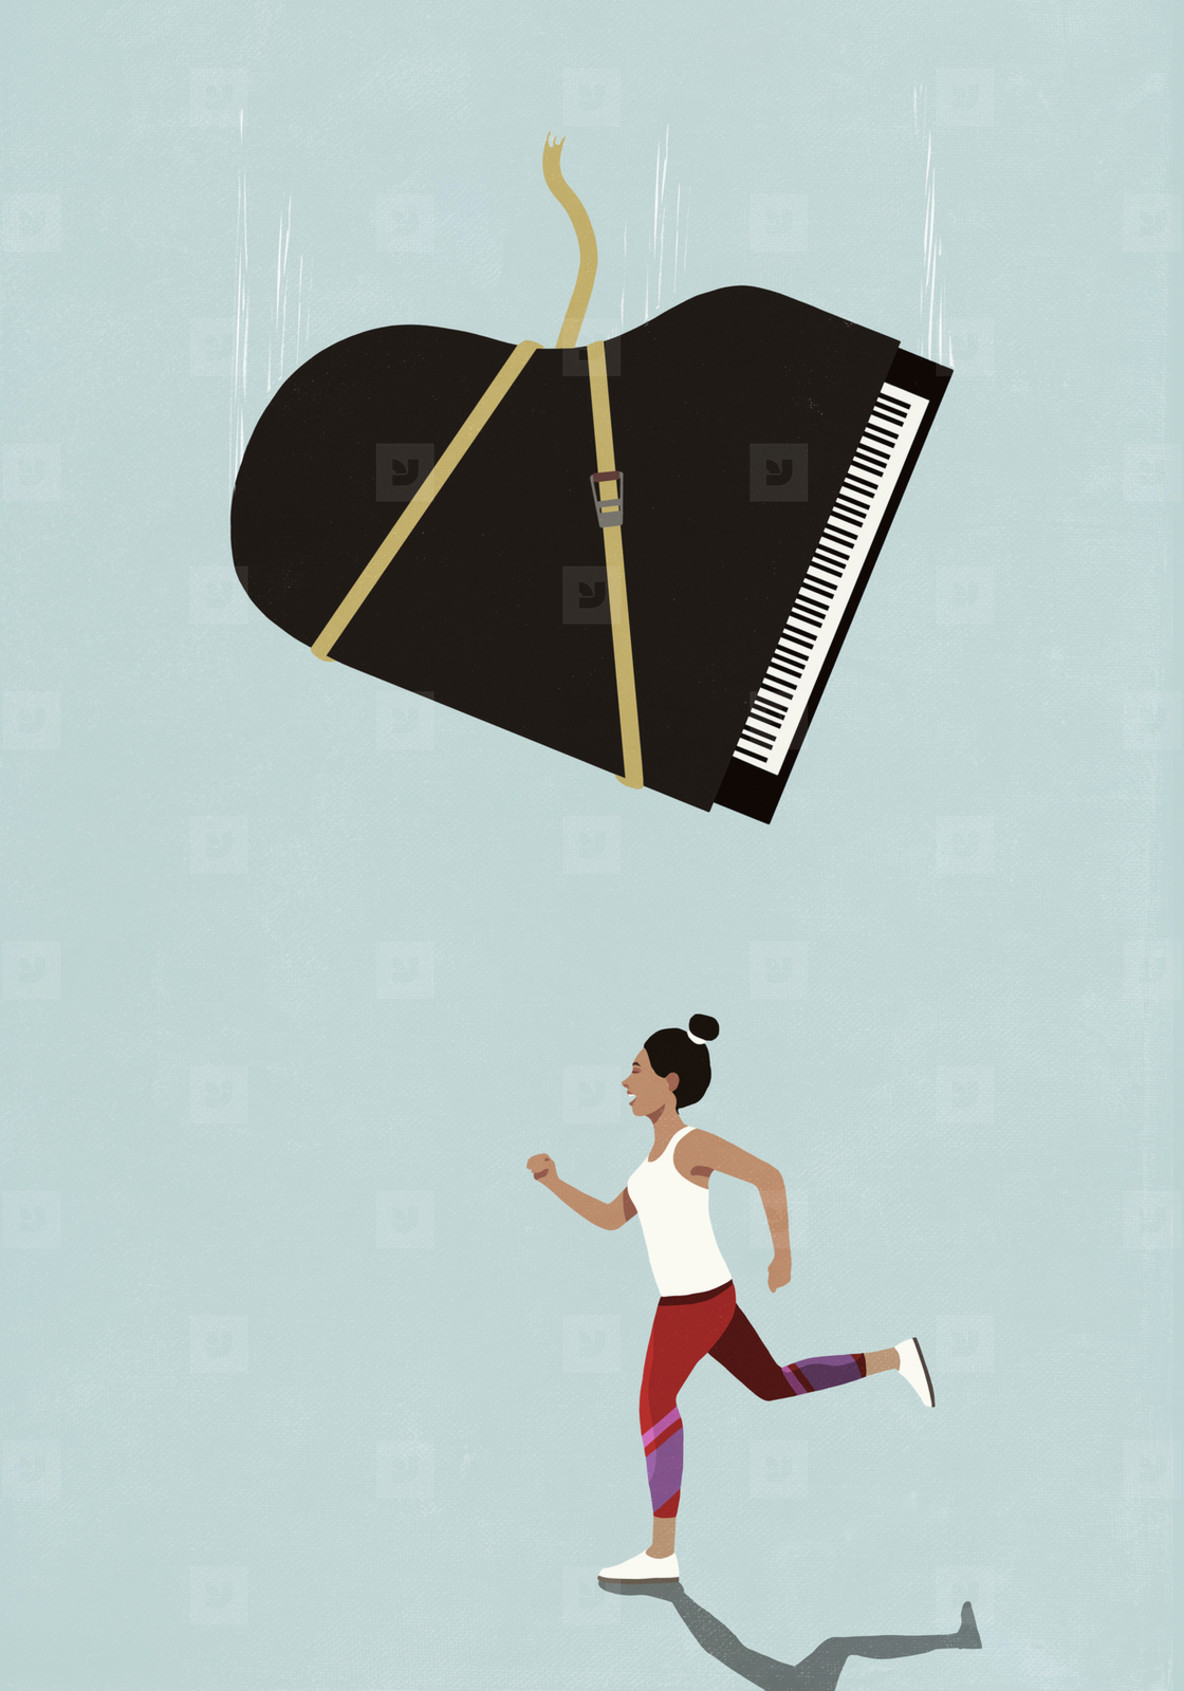 Grand piano falling above oblivious female runner